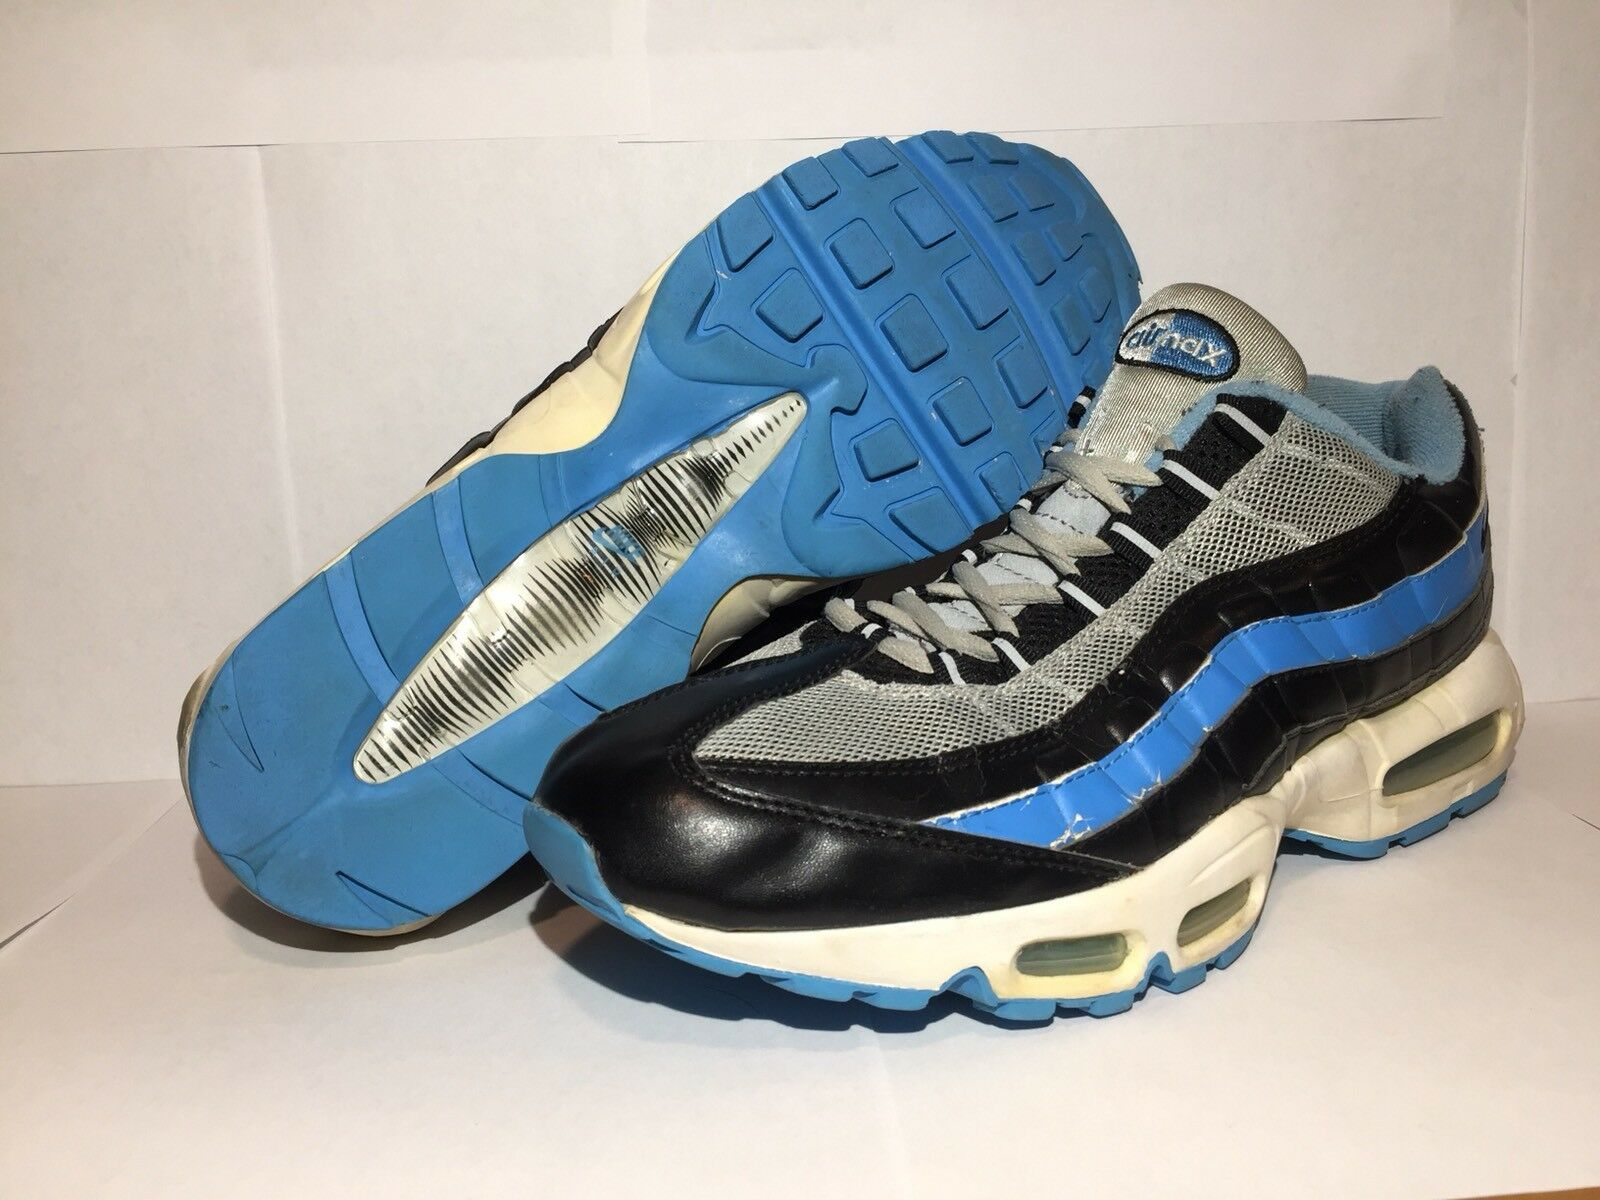 Rare 2005 Nike air max 95 bluee black 3m size 12 Sean Wotherspoon